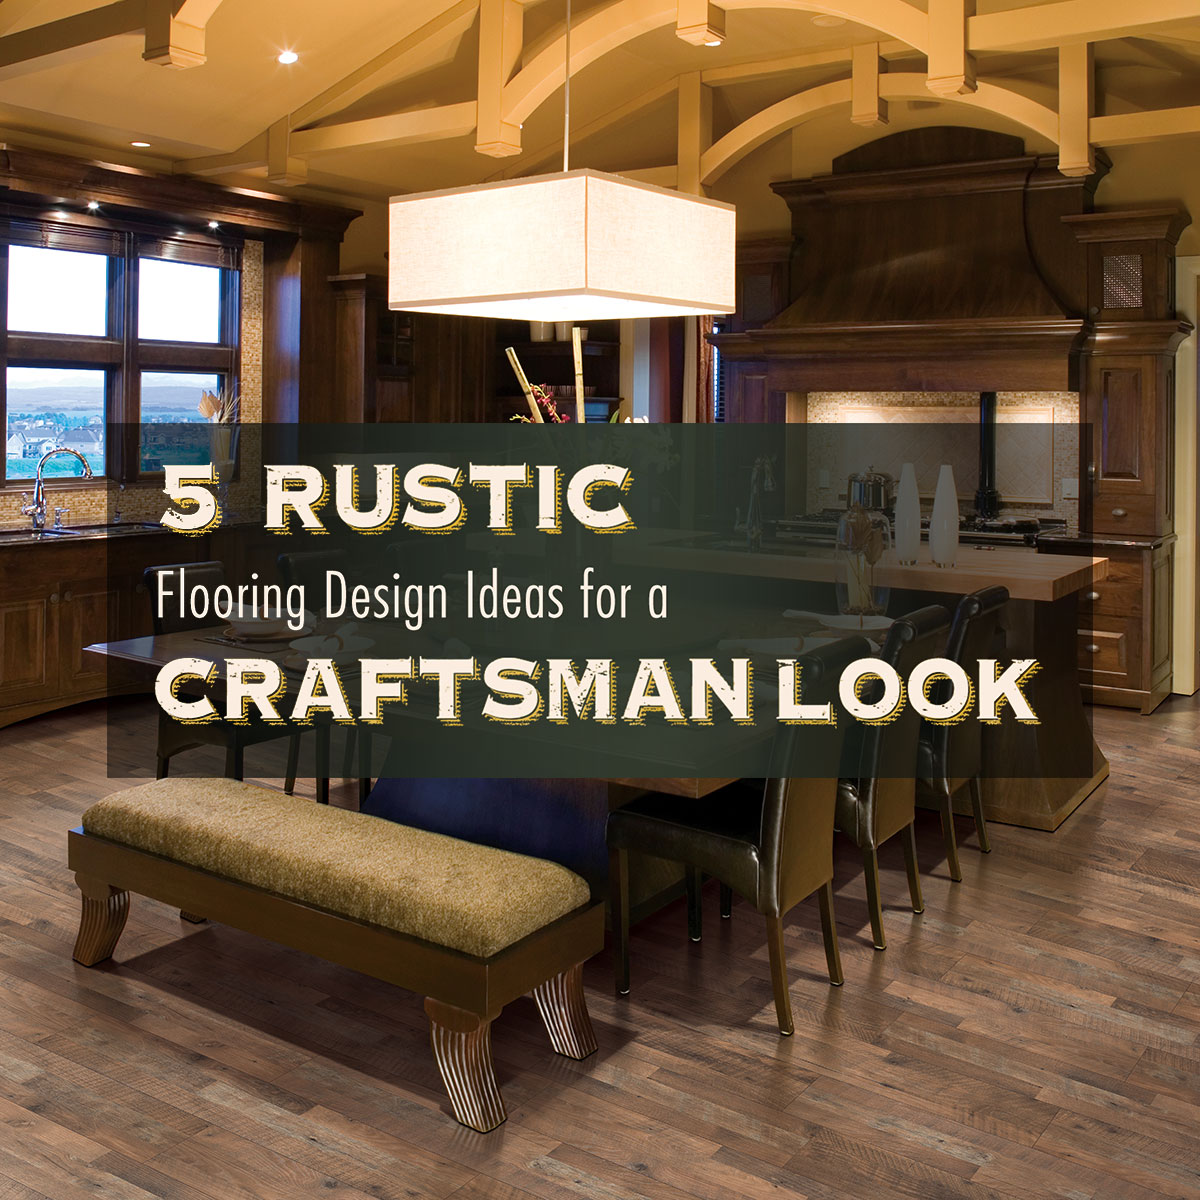 rustic flooring design ideas